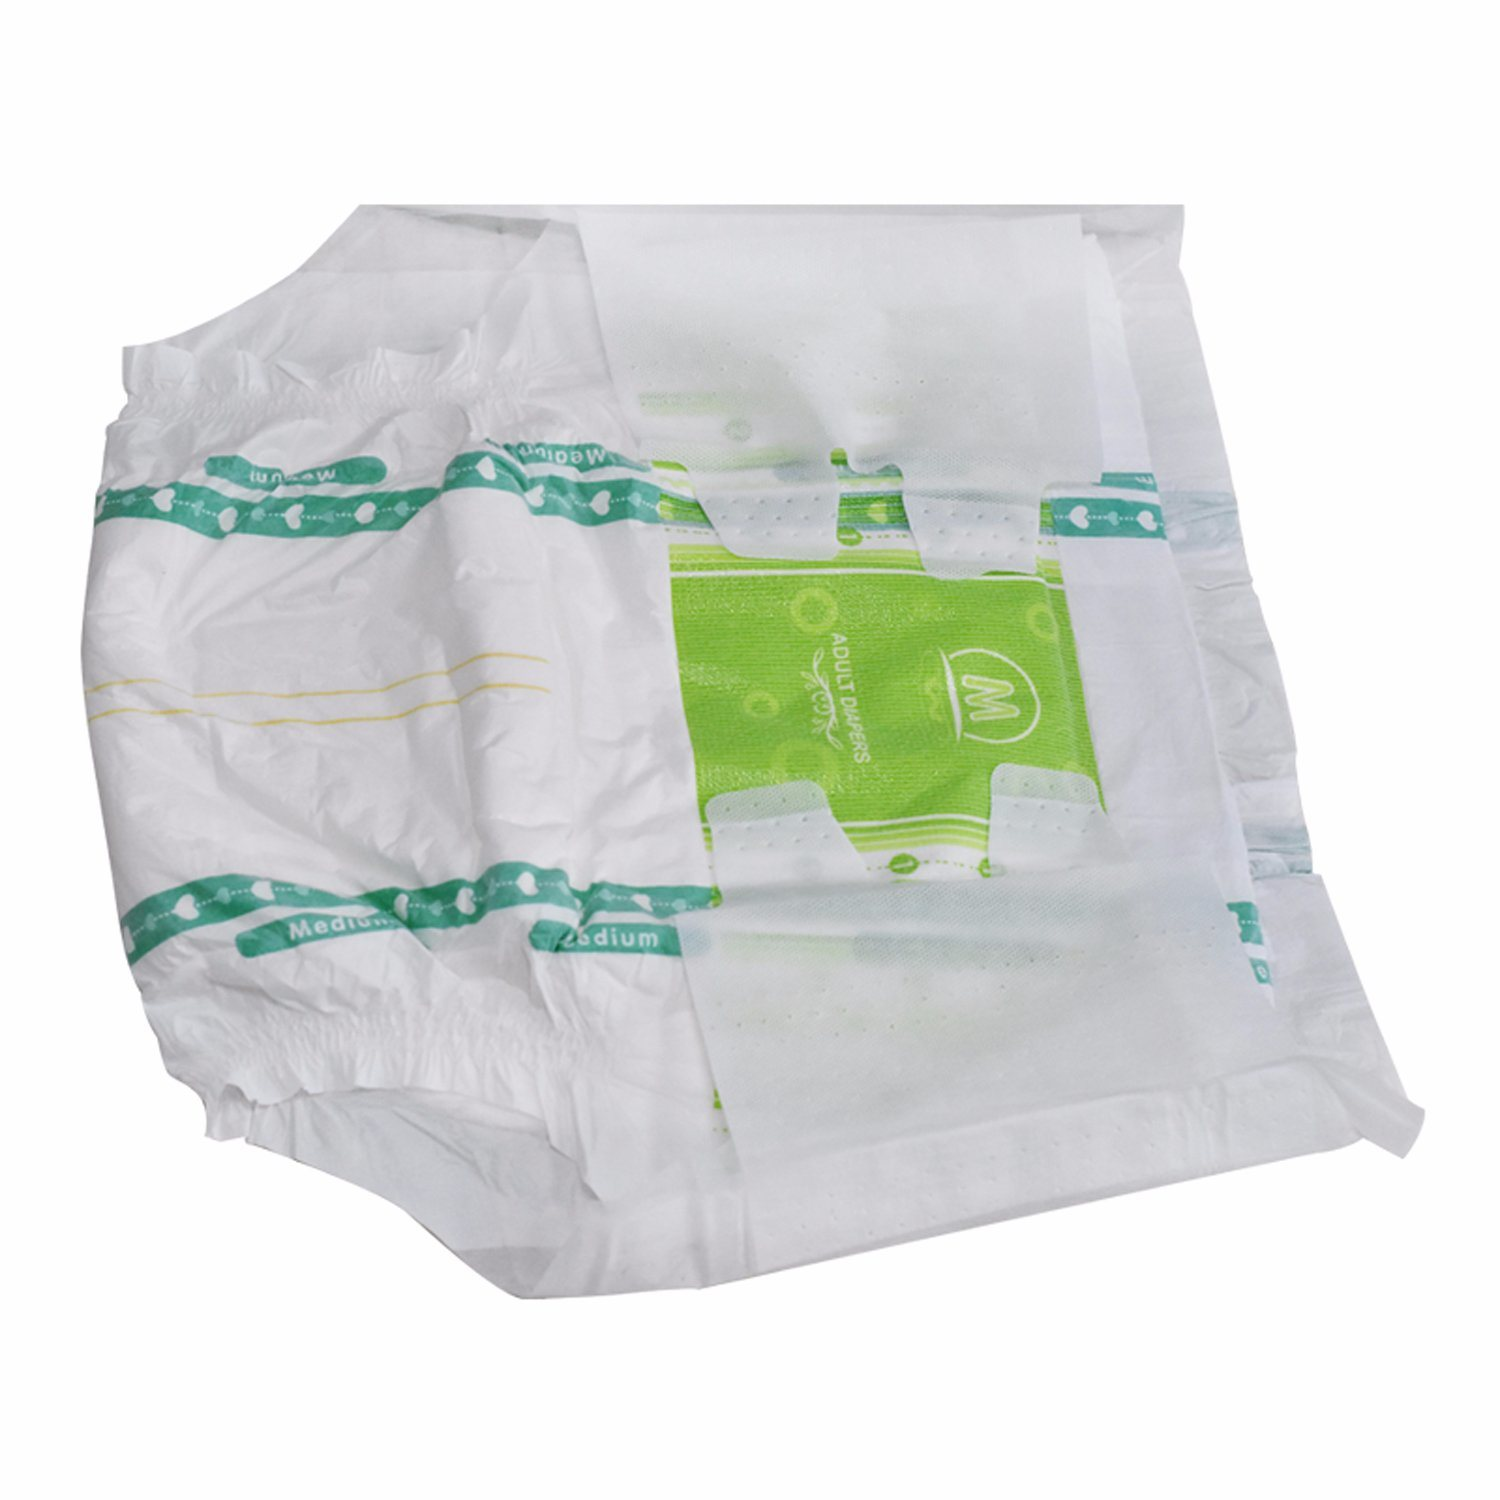 Cloth-Like Back Sheet Disposable Magic Tape Manufacturer Breathable Dry Surface Adult Diaper